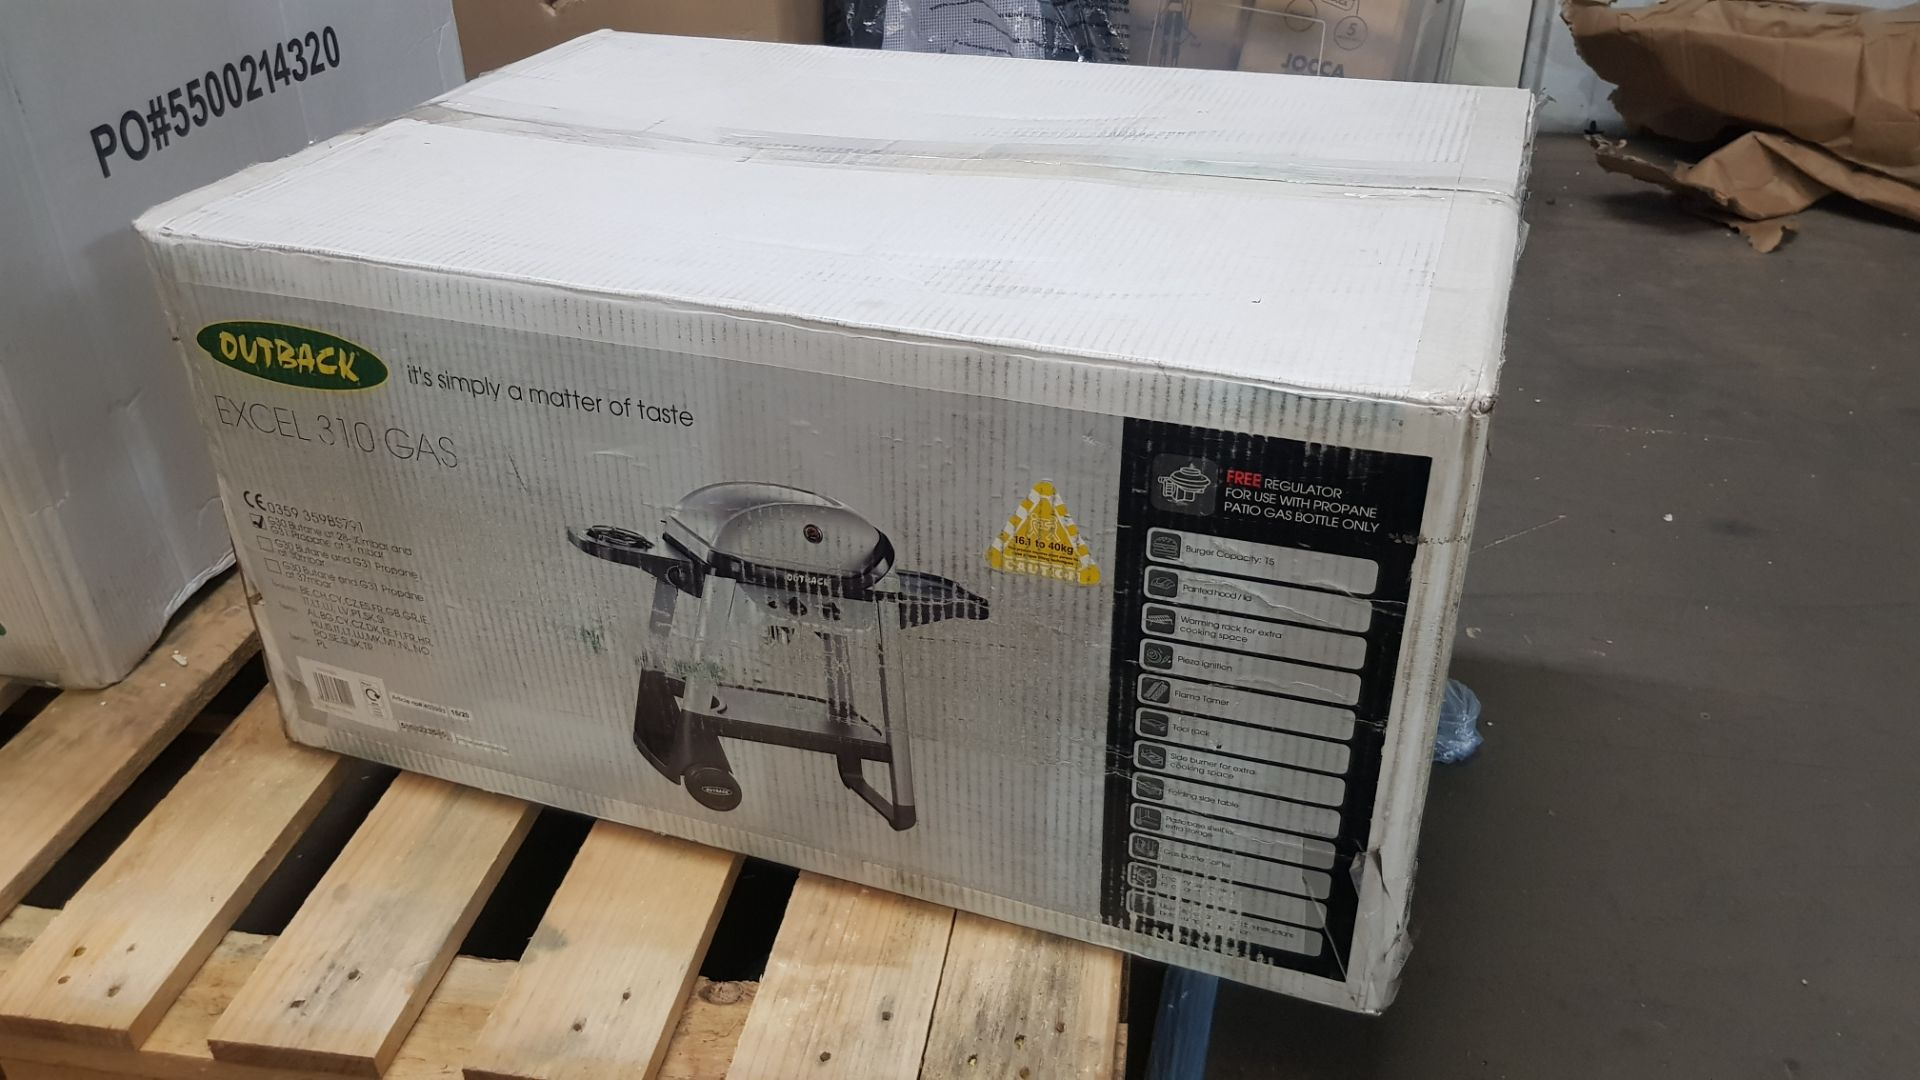 (P6) 1x Outback Excel 310 Gas BBQ Silver RRP £100. New, Sealed Unit, With Damage To Box On One Side - Image 5 of 5